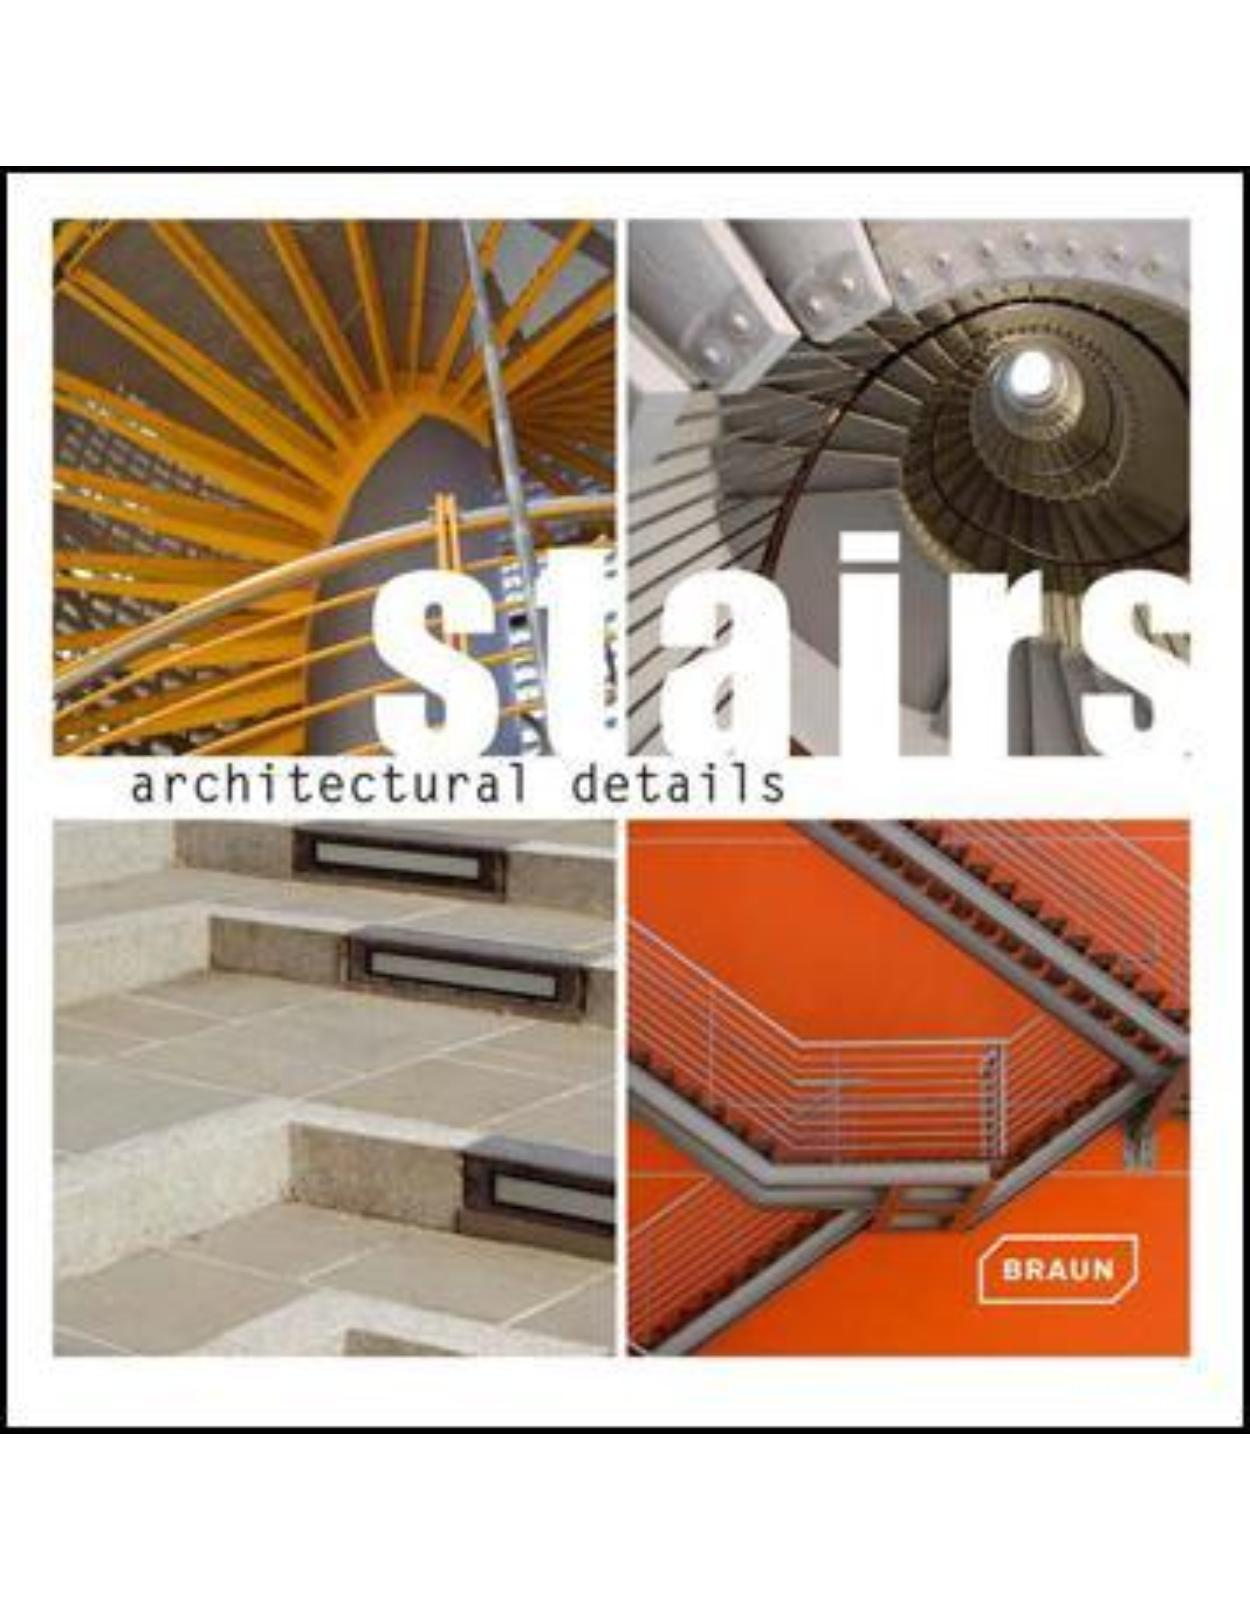 Stairs (Architectural Details)